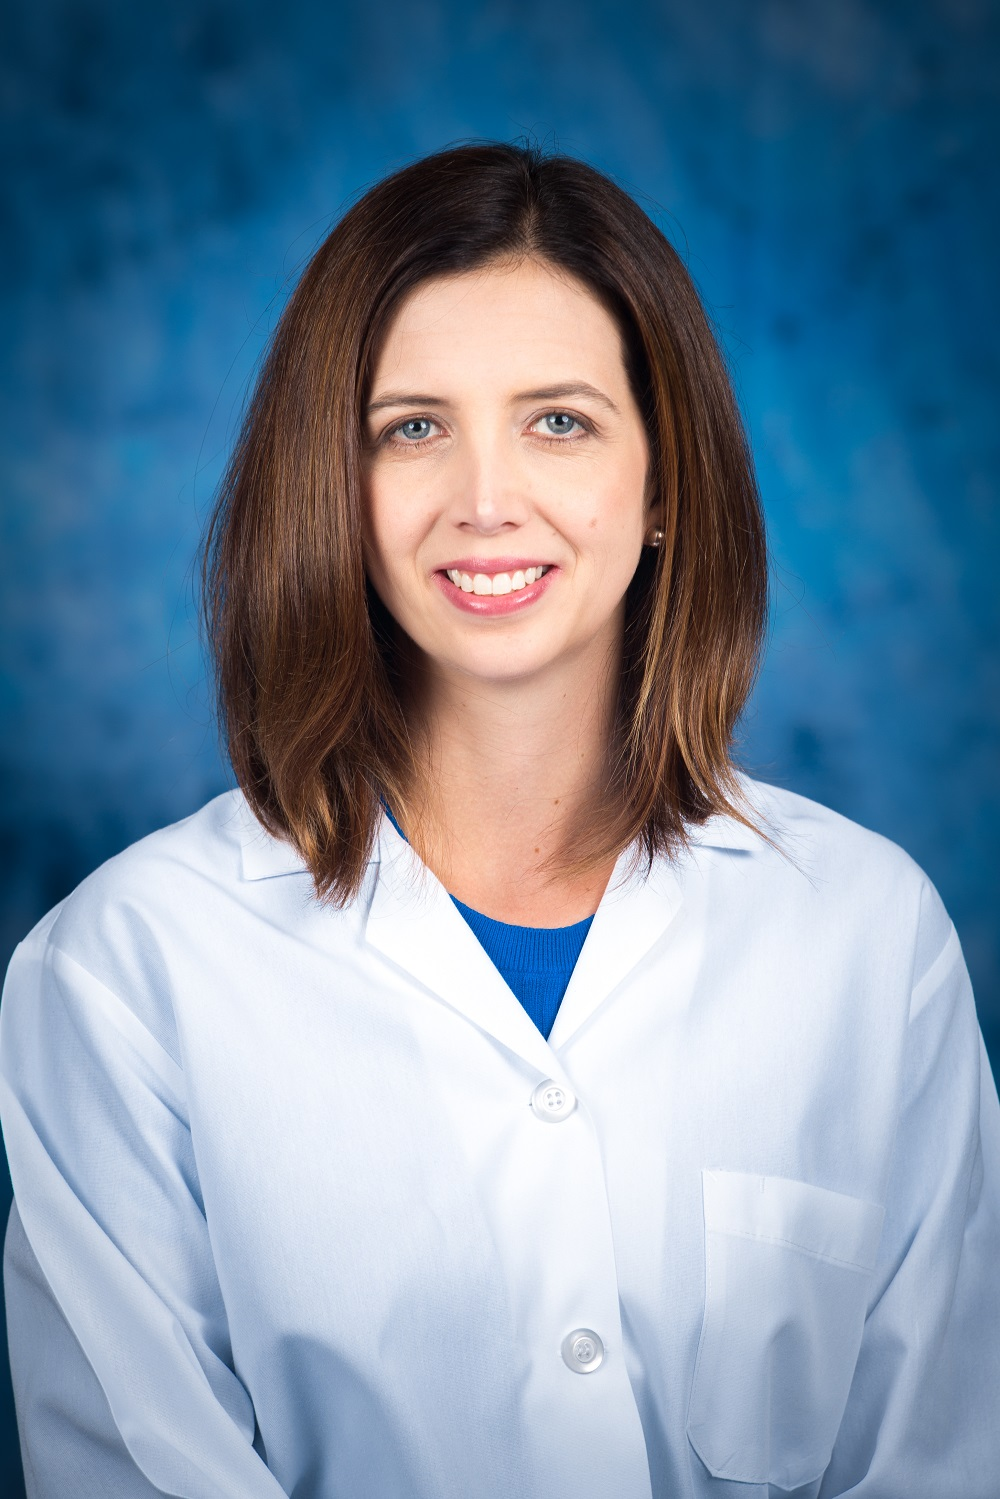 Meet the Cardiology Team at Cardiology Associates of East Tennessee